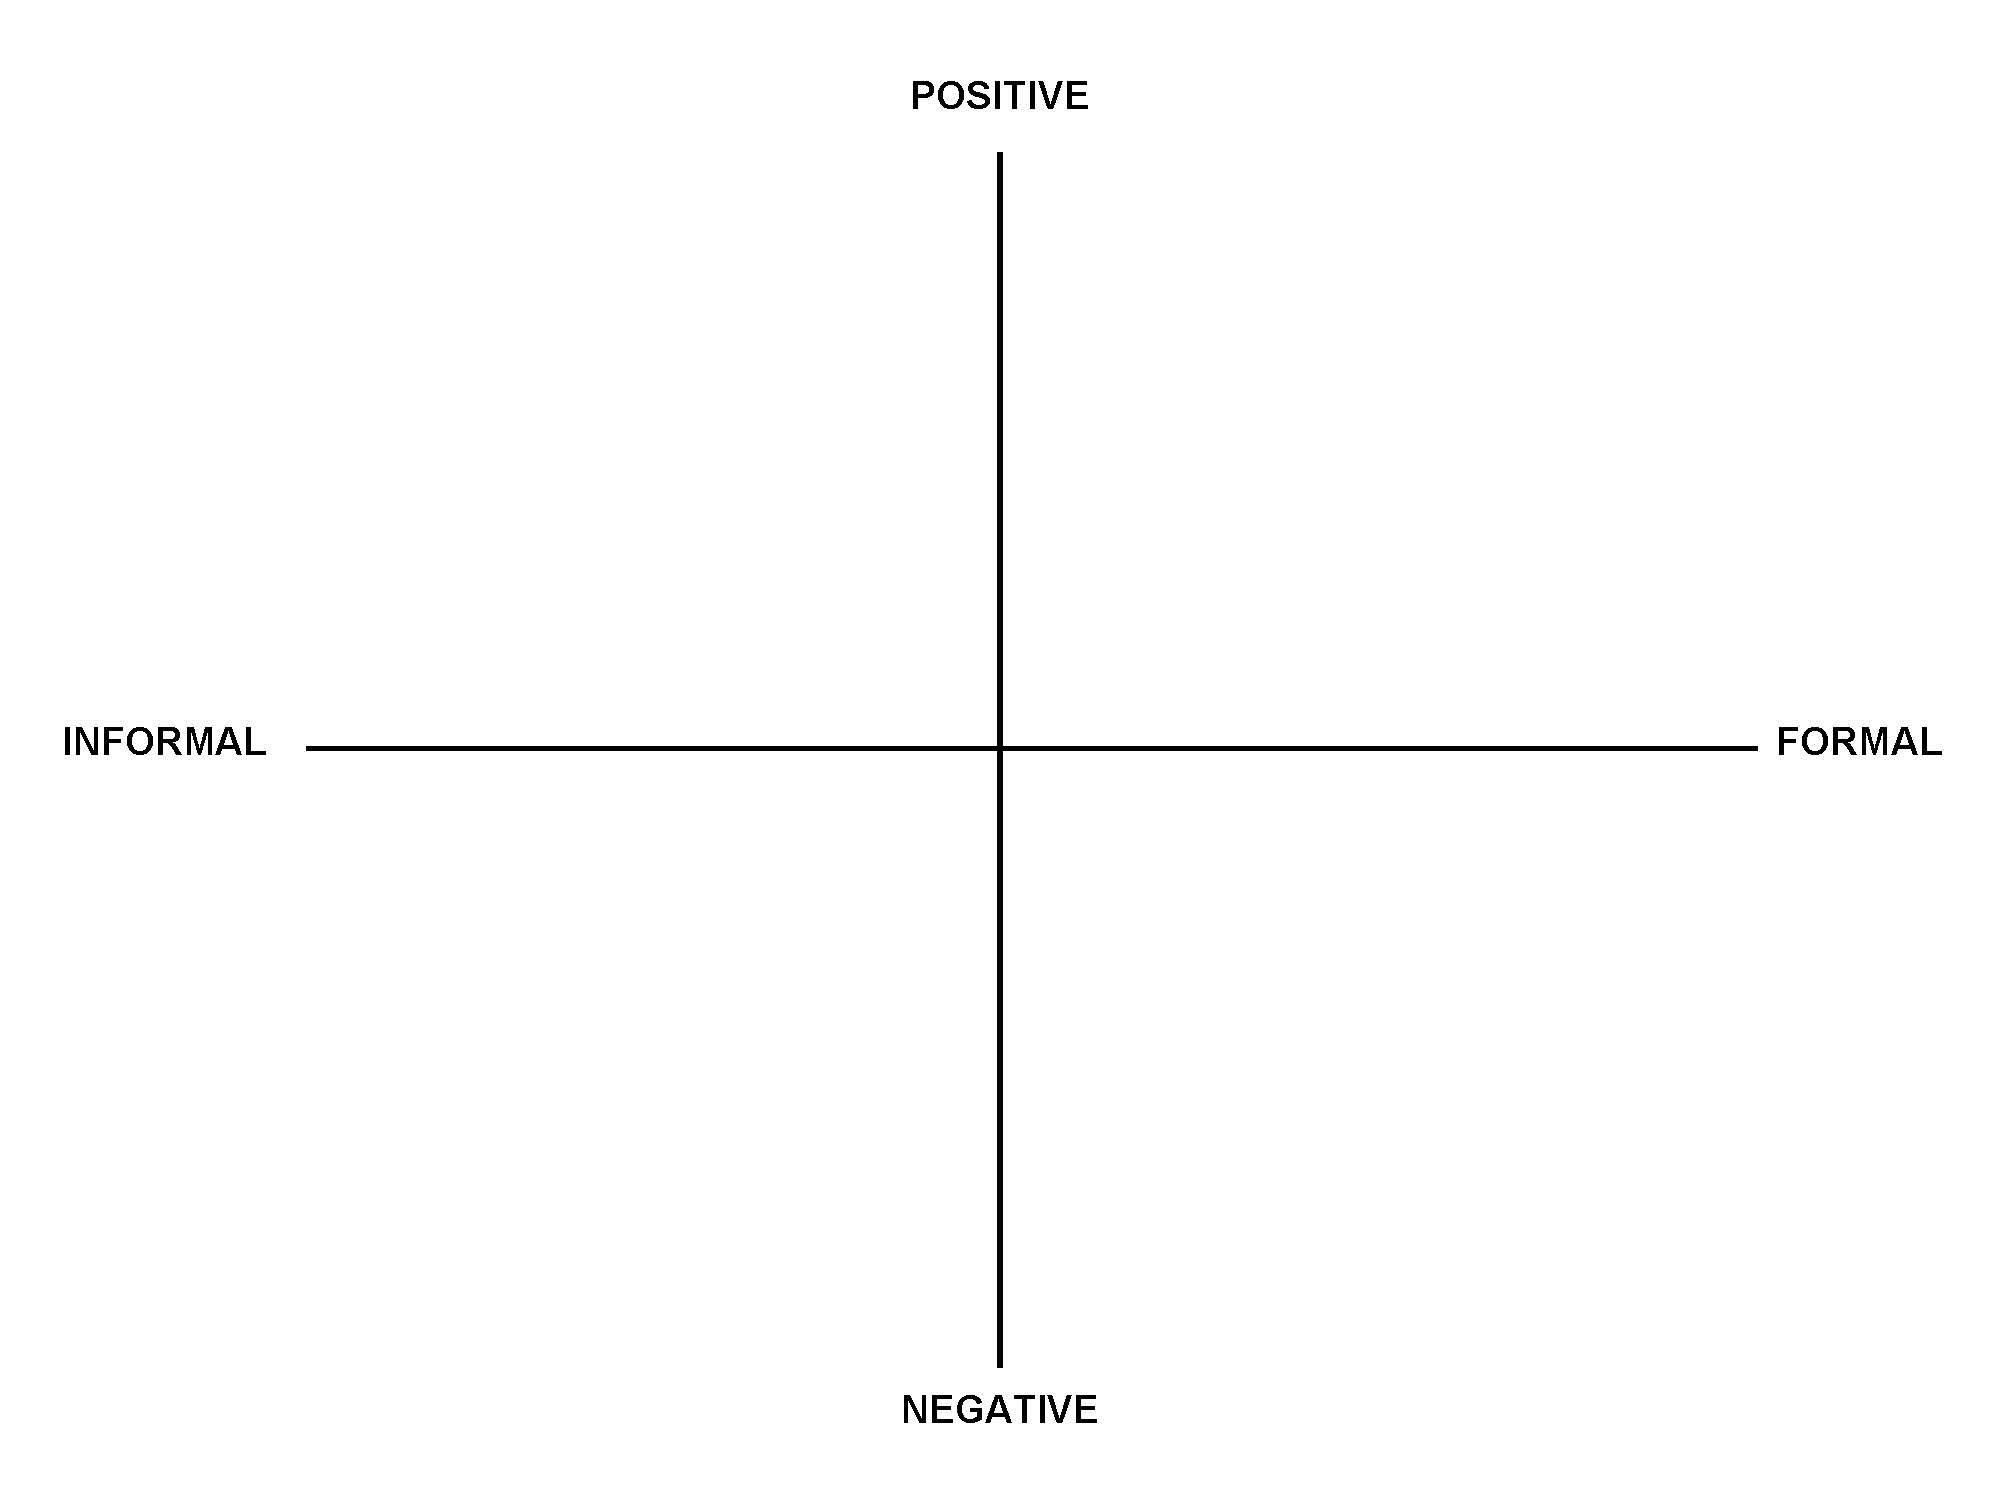 Four quadrant chart with Informal to Formal on the X axis and Positive to Negative on the Y axis